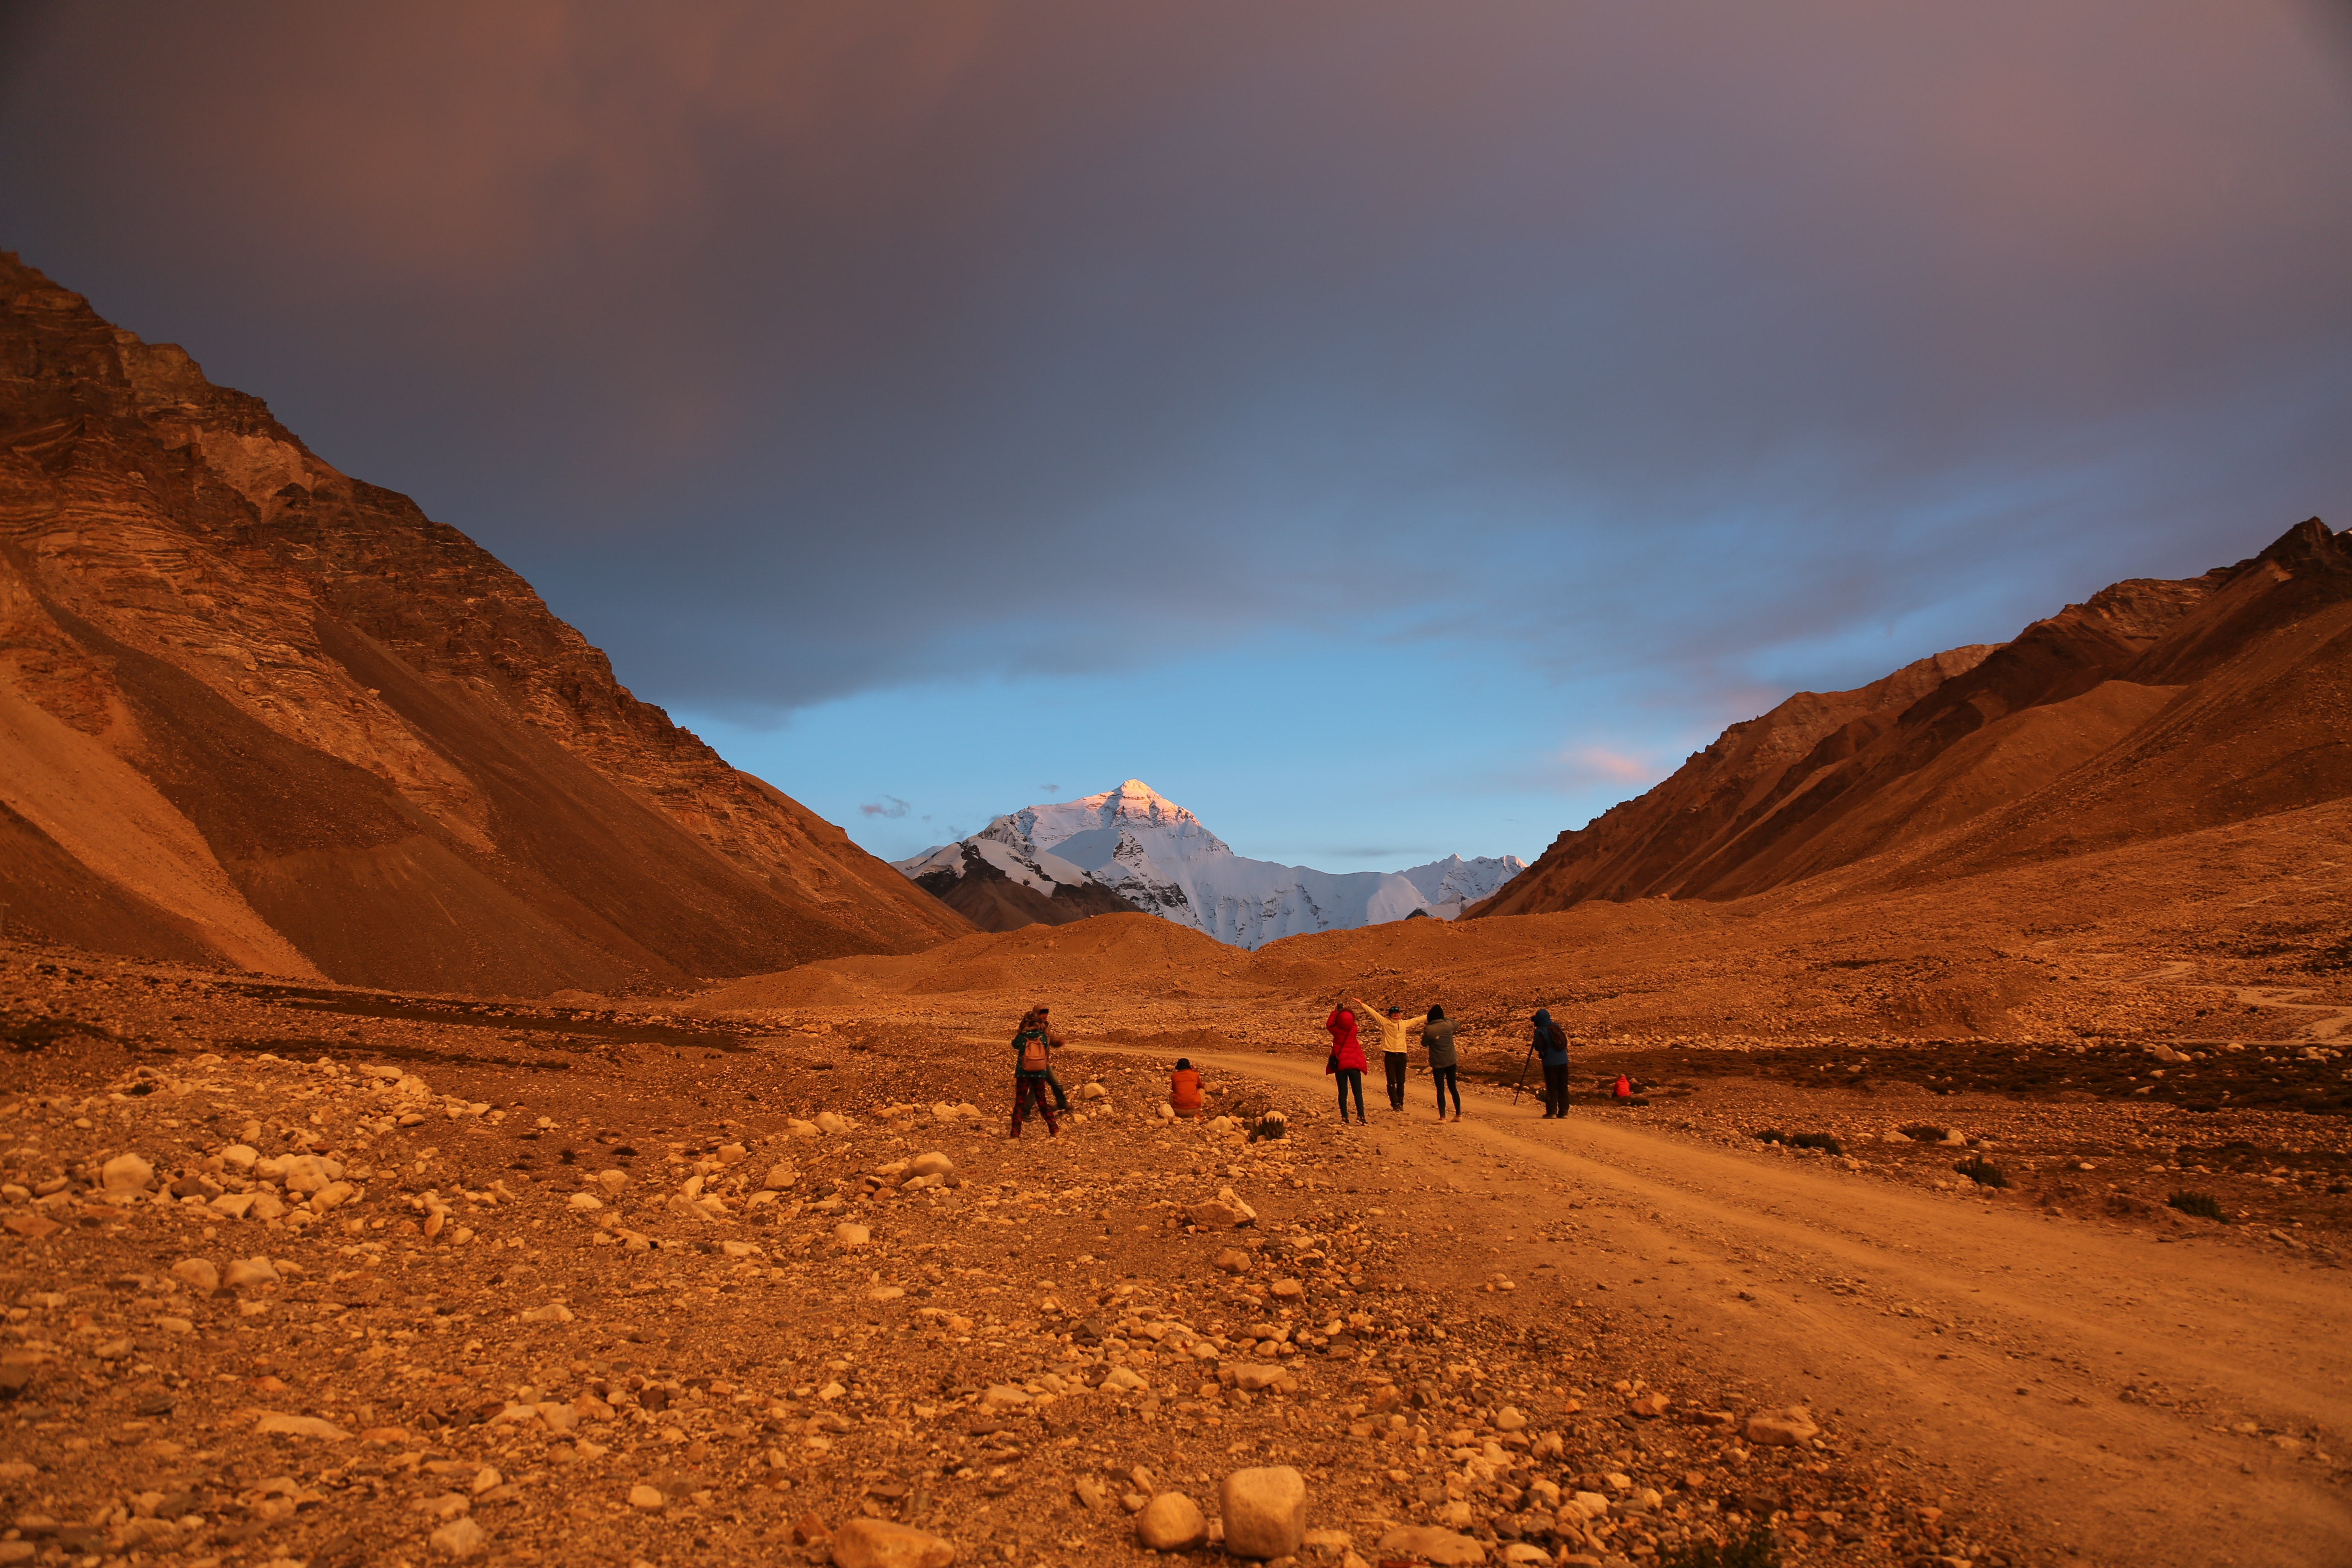 group of people walks on dirt road leading to mountain